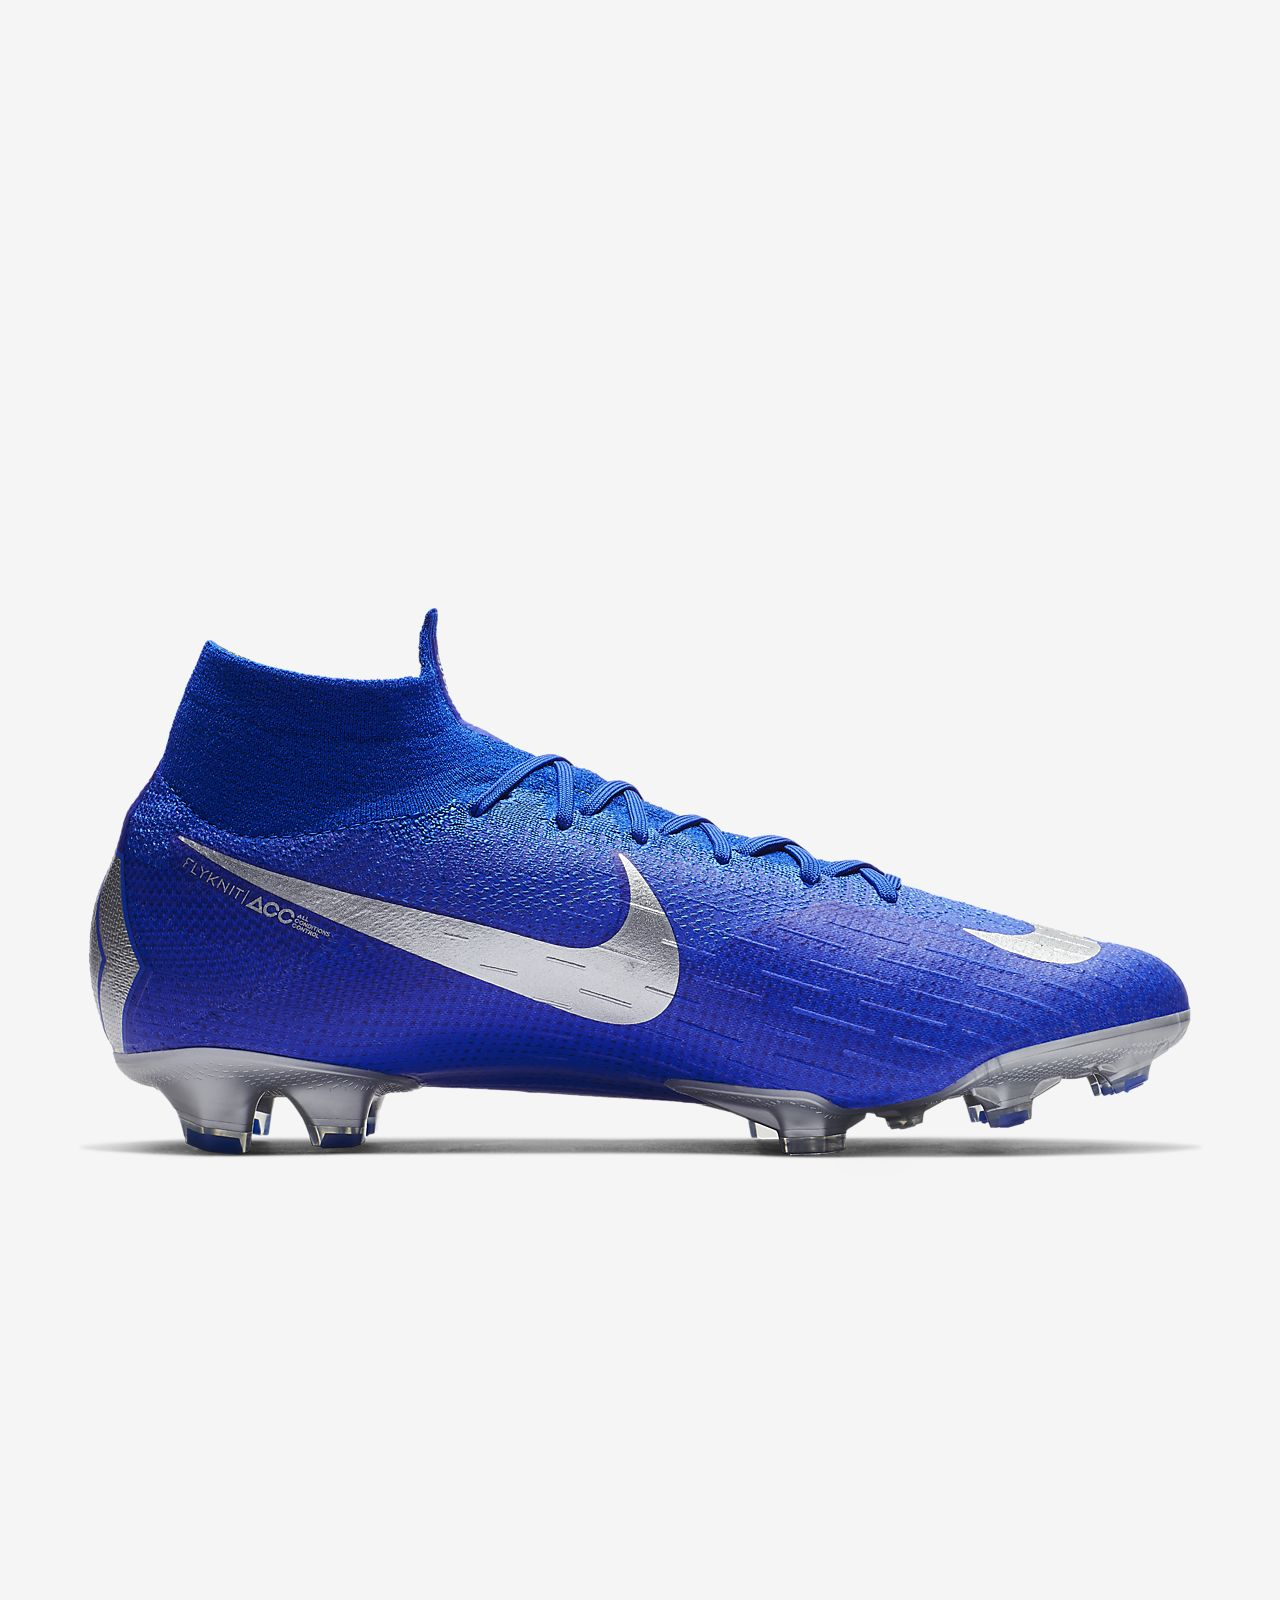 c96c7387f04 Nike Superfly 6 Elite FG Firm-Ground Football Boot. Nike.com MA